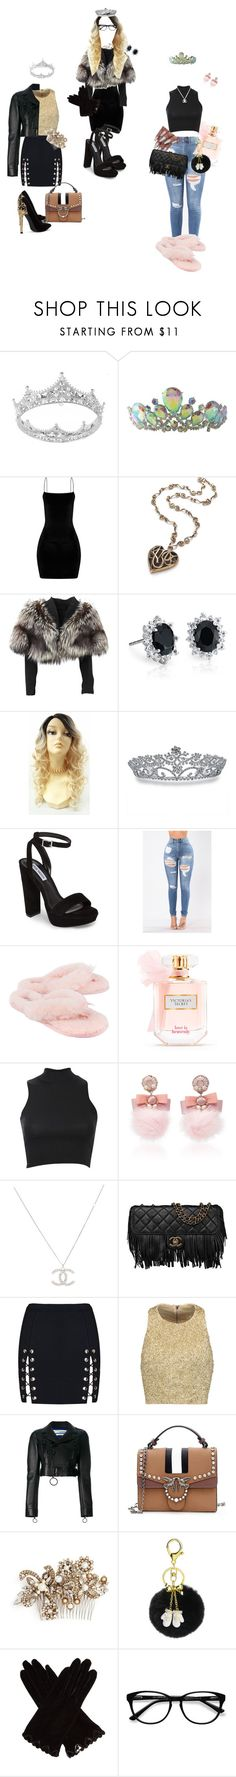 """""""Bday outfits #3"""" by dollabill256 ❤ liked on Polyvore featuring Lolita Lempicka, Blue Nile, Bling Jewelry, Steve Madden, UGG, Victoria's Secret, Pilot, Ranjana Khan, Chanel and Alice + Olivia"""